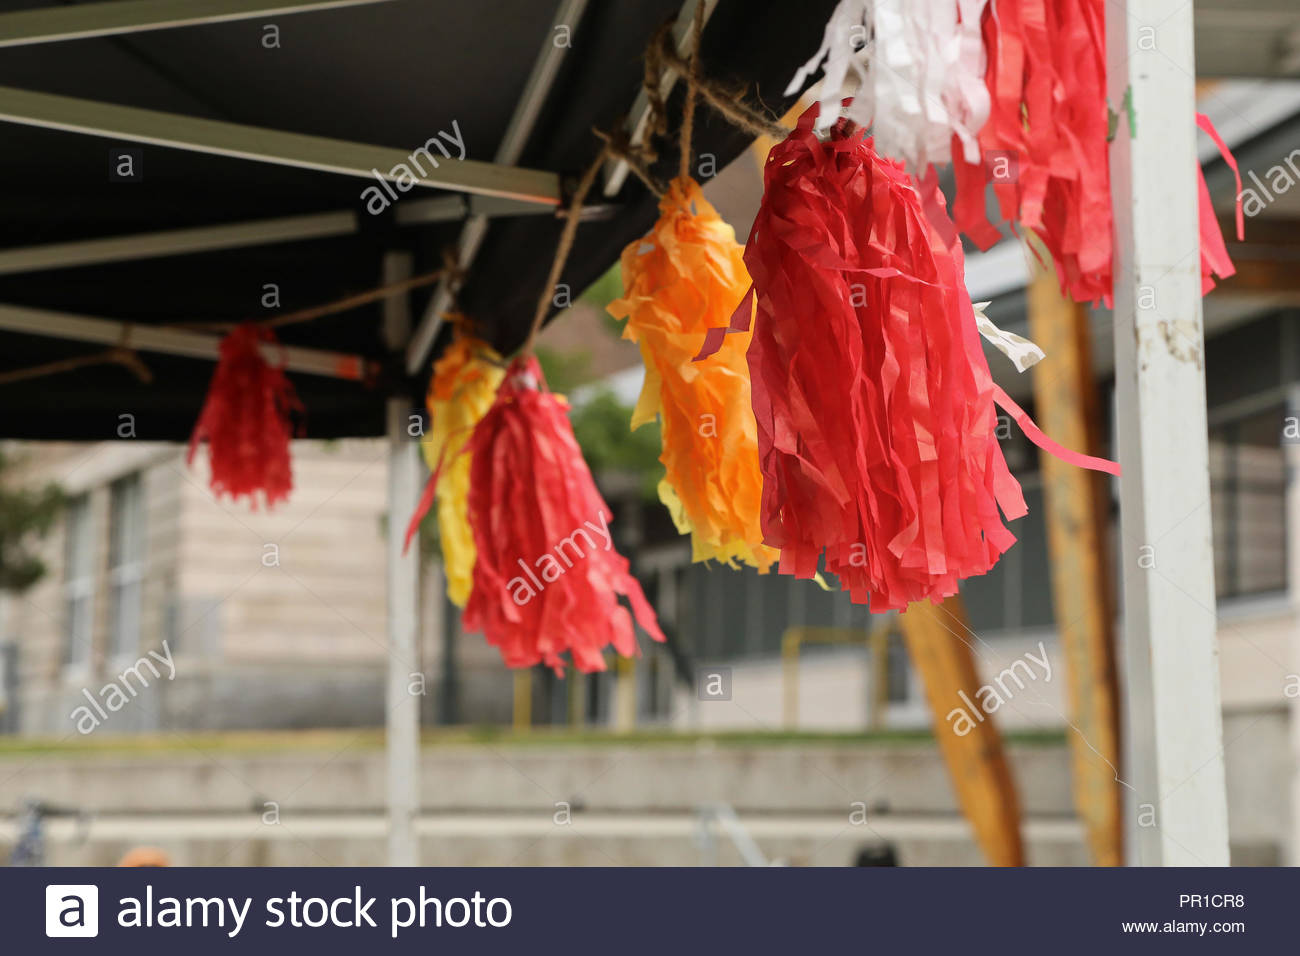 Streamers at Fernfest in Victoria, B.C. - Stock Image